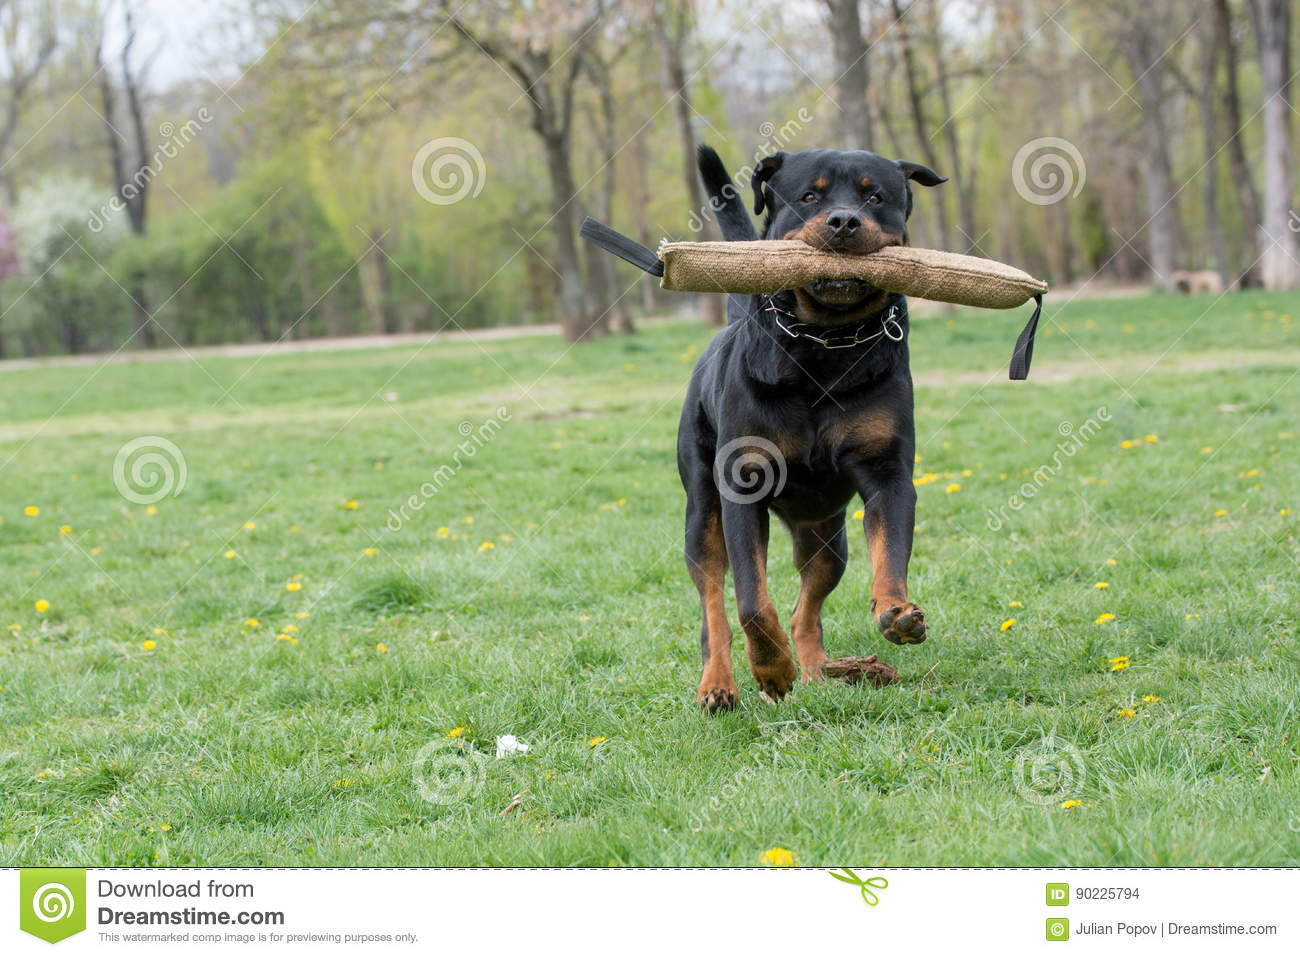 Rottweiler Running On The Grass Stock Photo Image Of Park Breed